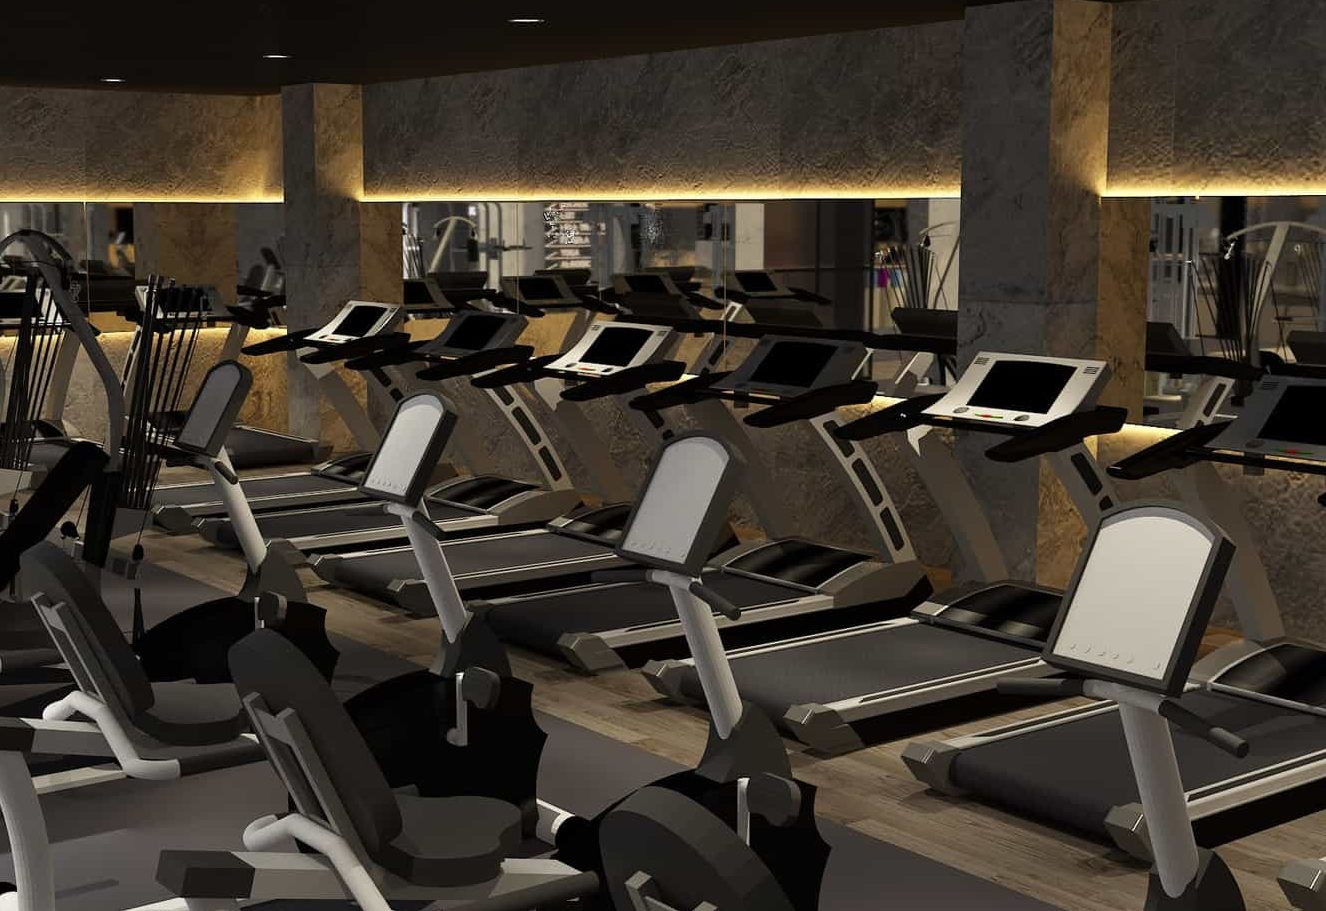 A gym with black interior and LED lighting